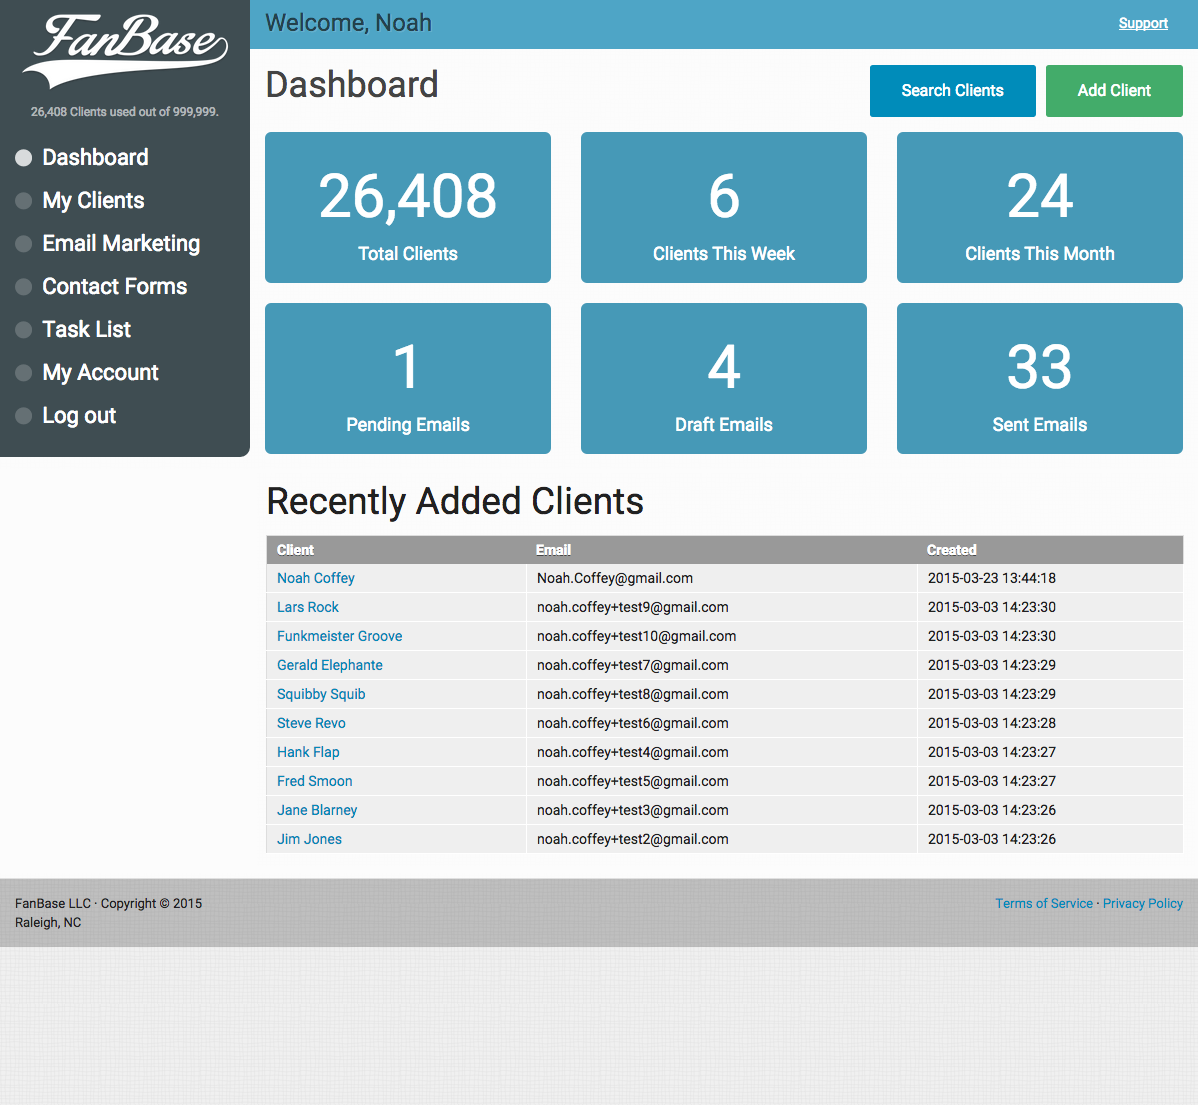 FanBase Dashboard